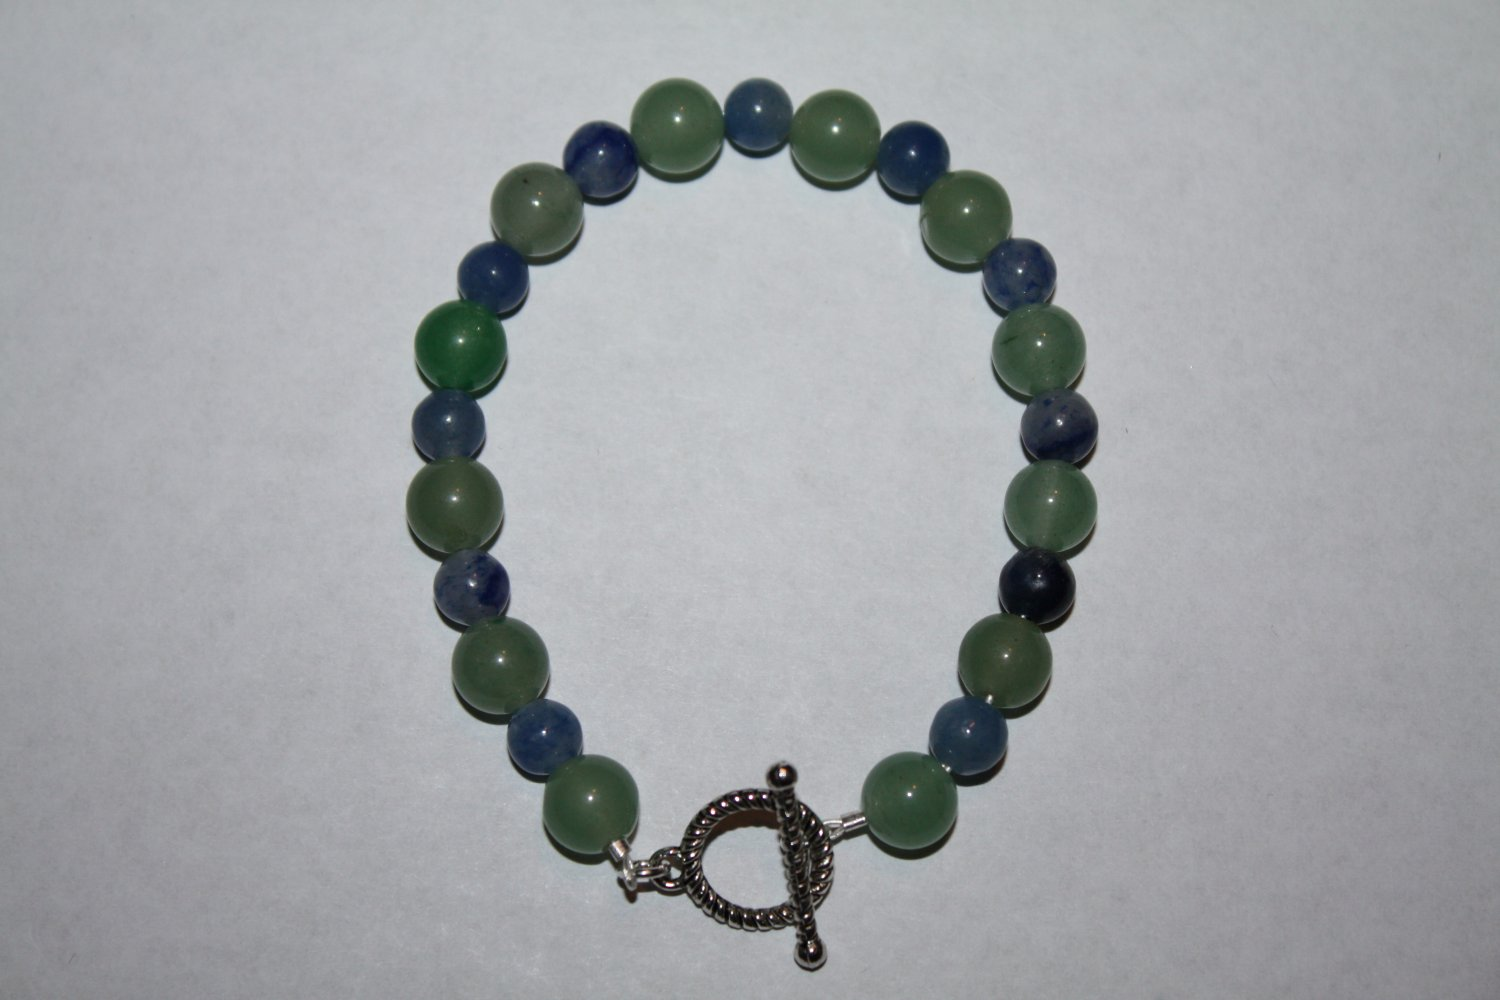 Blue Aventine and Aventine Bracelet